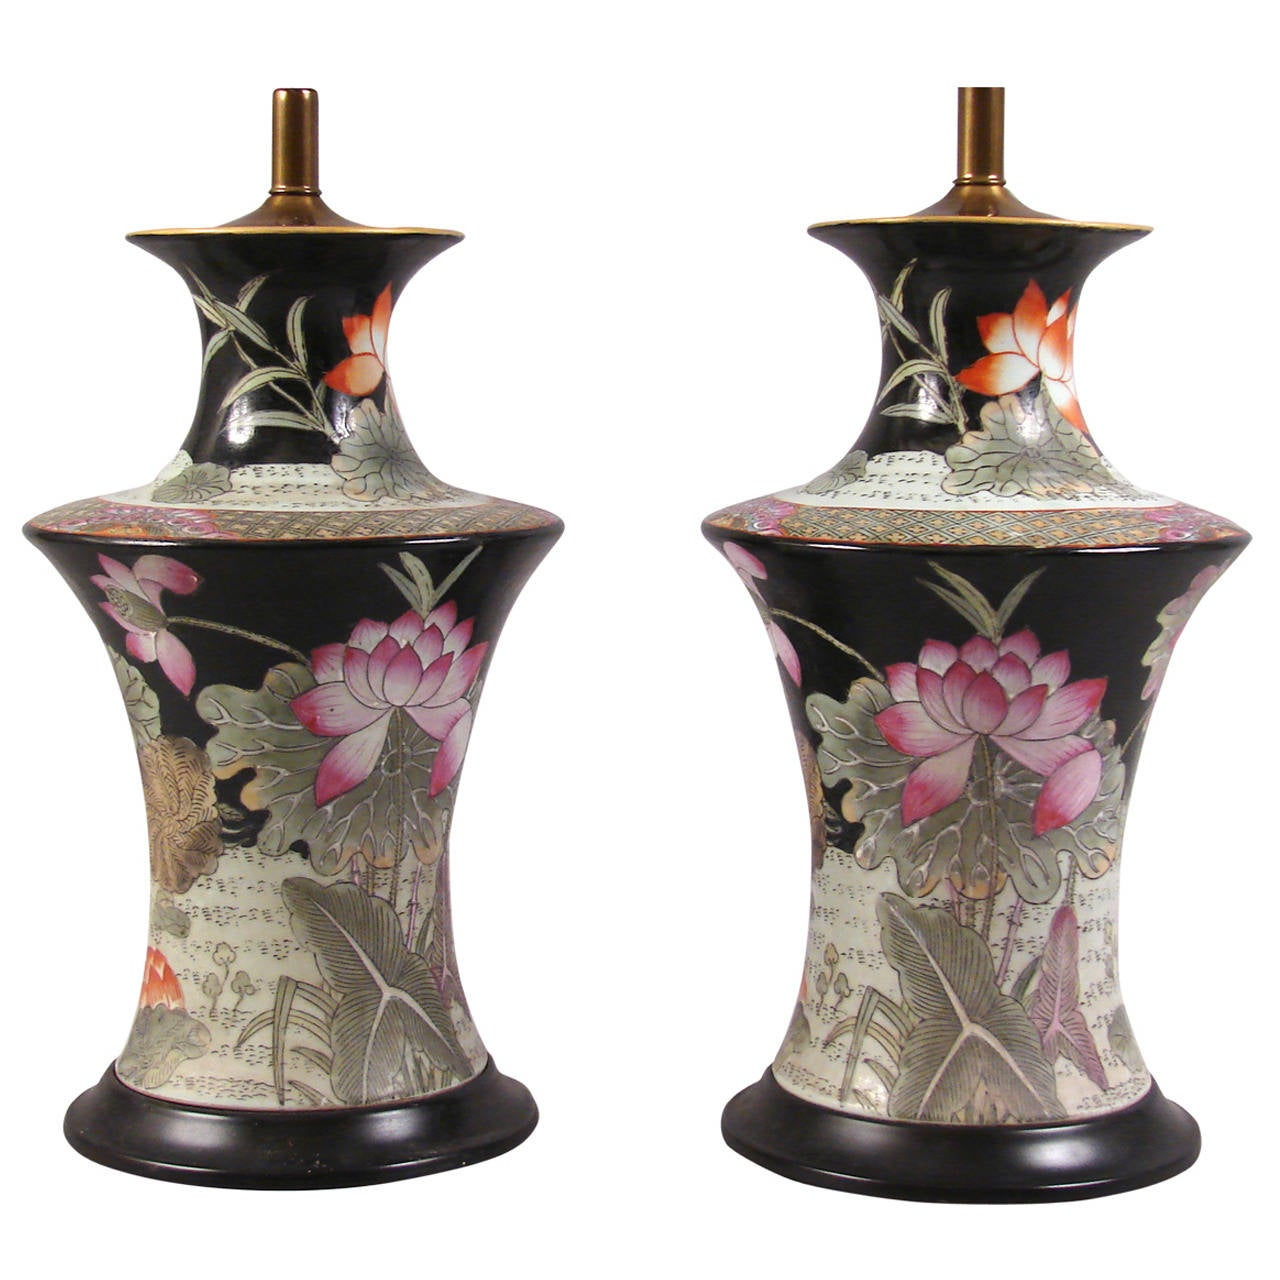 chinese famille noir vases as lamps at 1stdibs. Black Bedroom Furniture Sets. Home Design Ideas